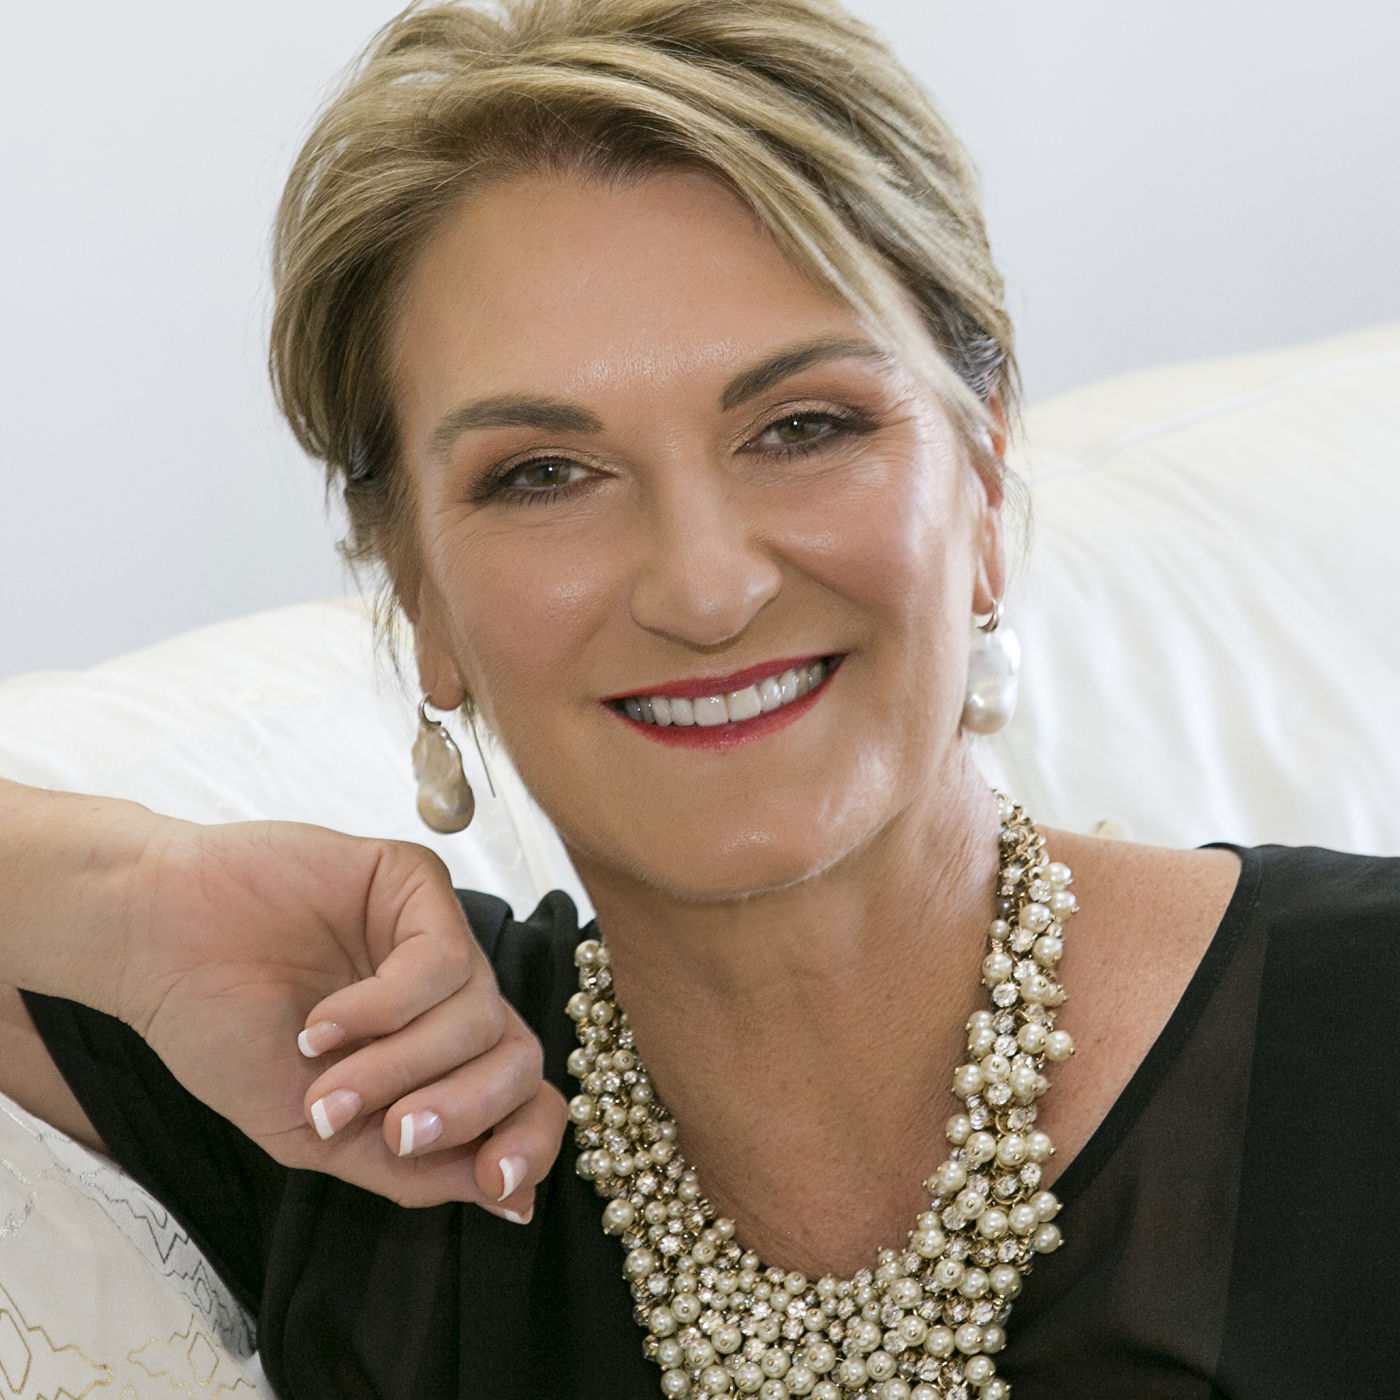 Dr Louise Mahler: From Vienna opera singer to sought after Leadership speaker